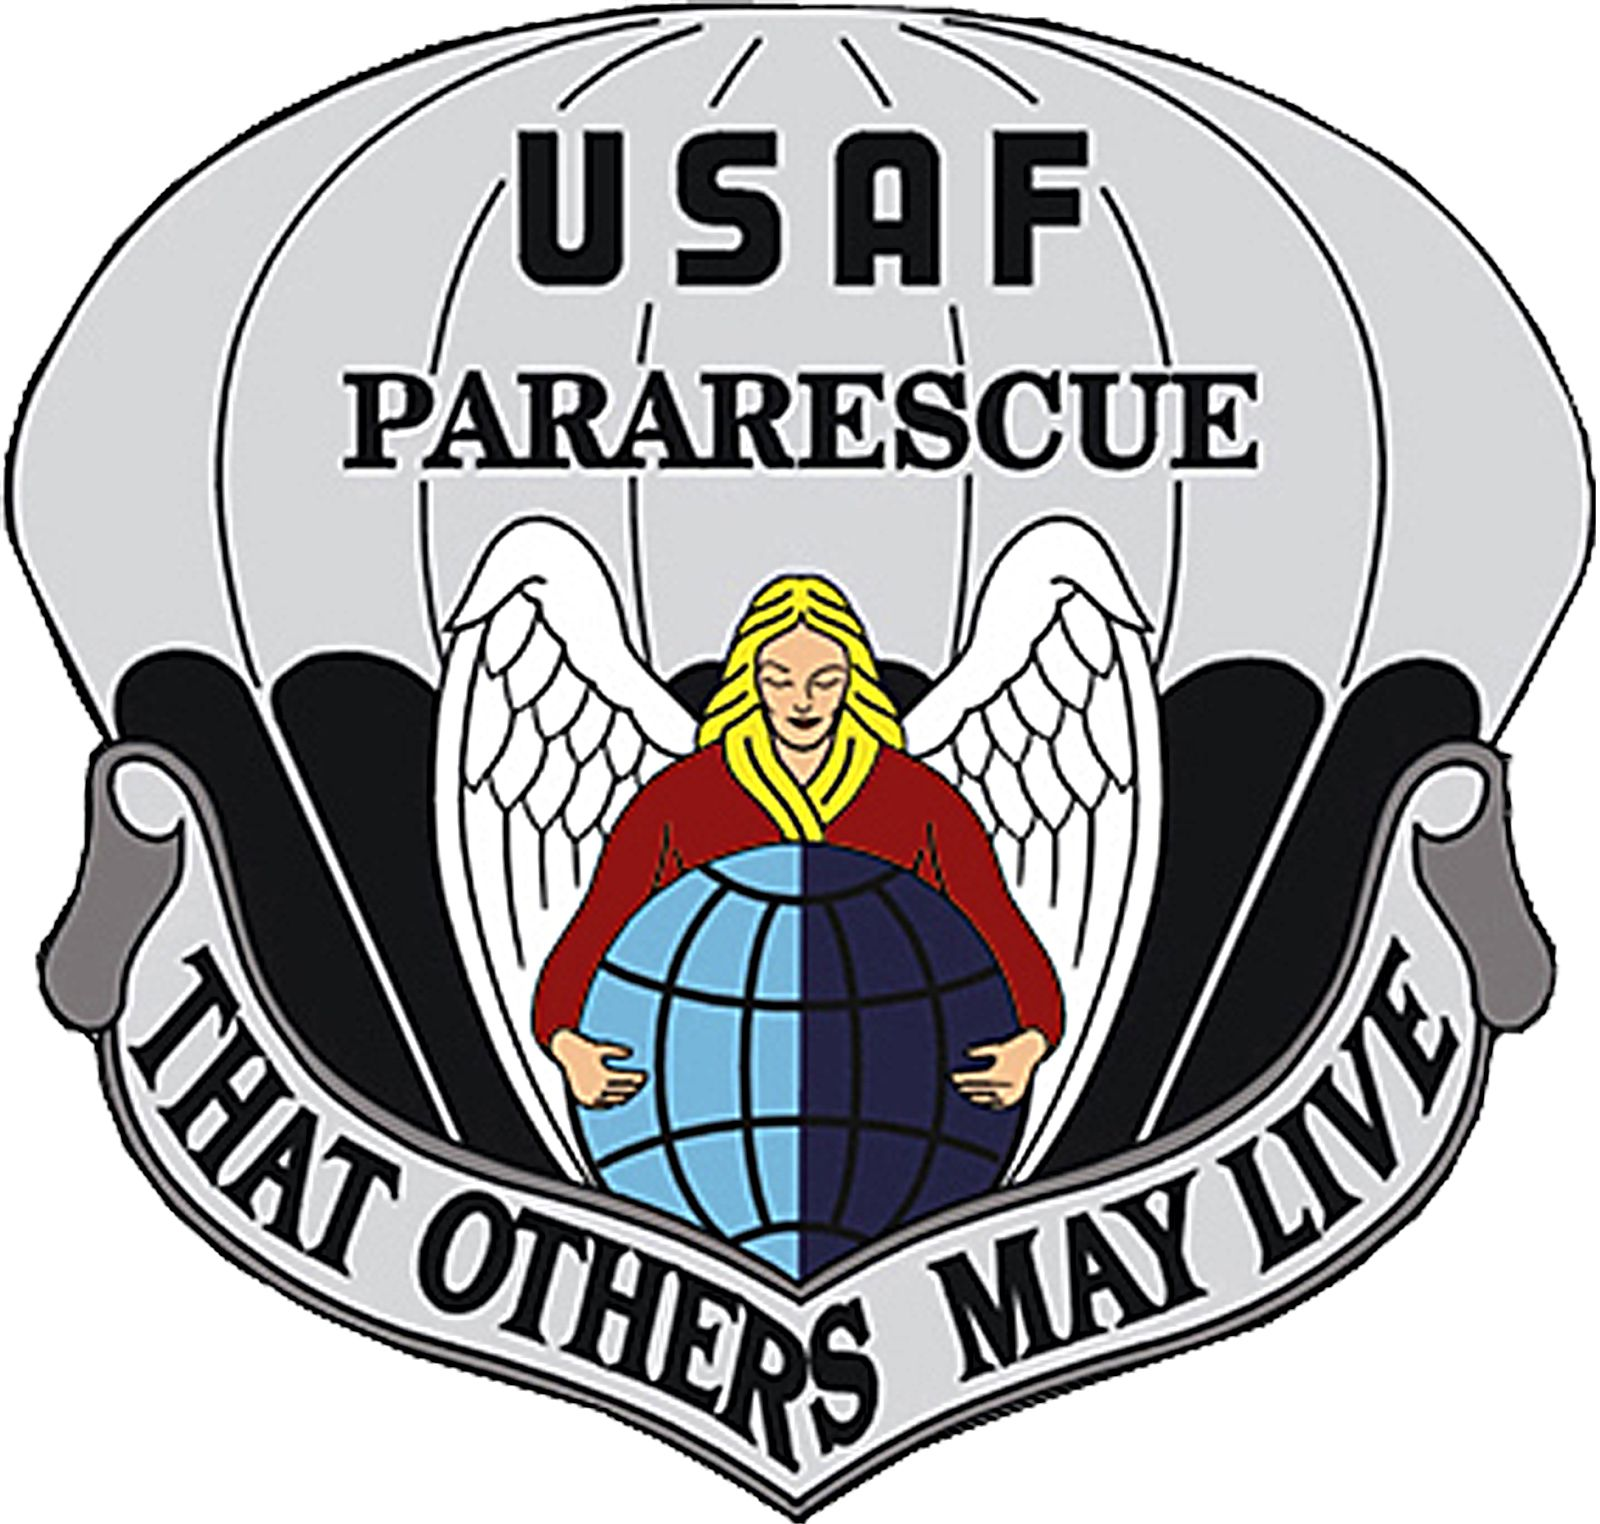 Pararescue Logo Air force pararescue, Usaf pararescue